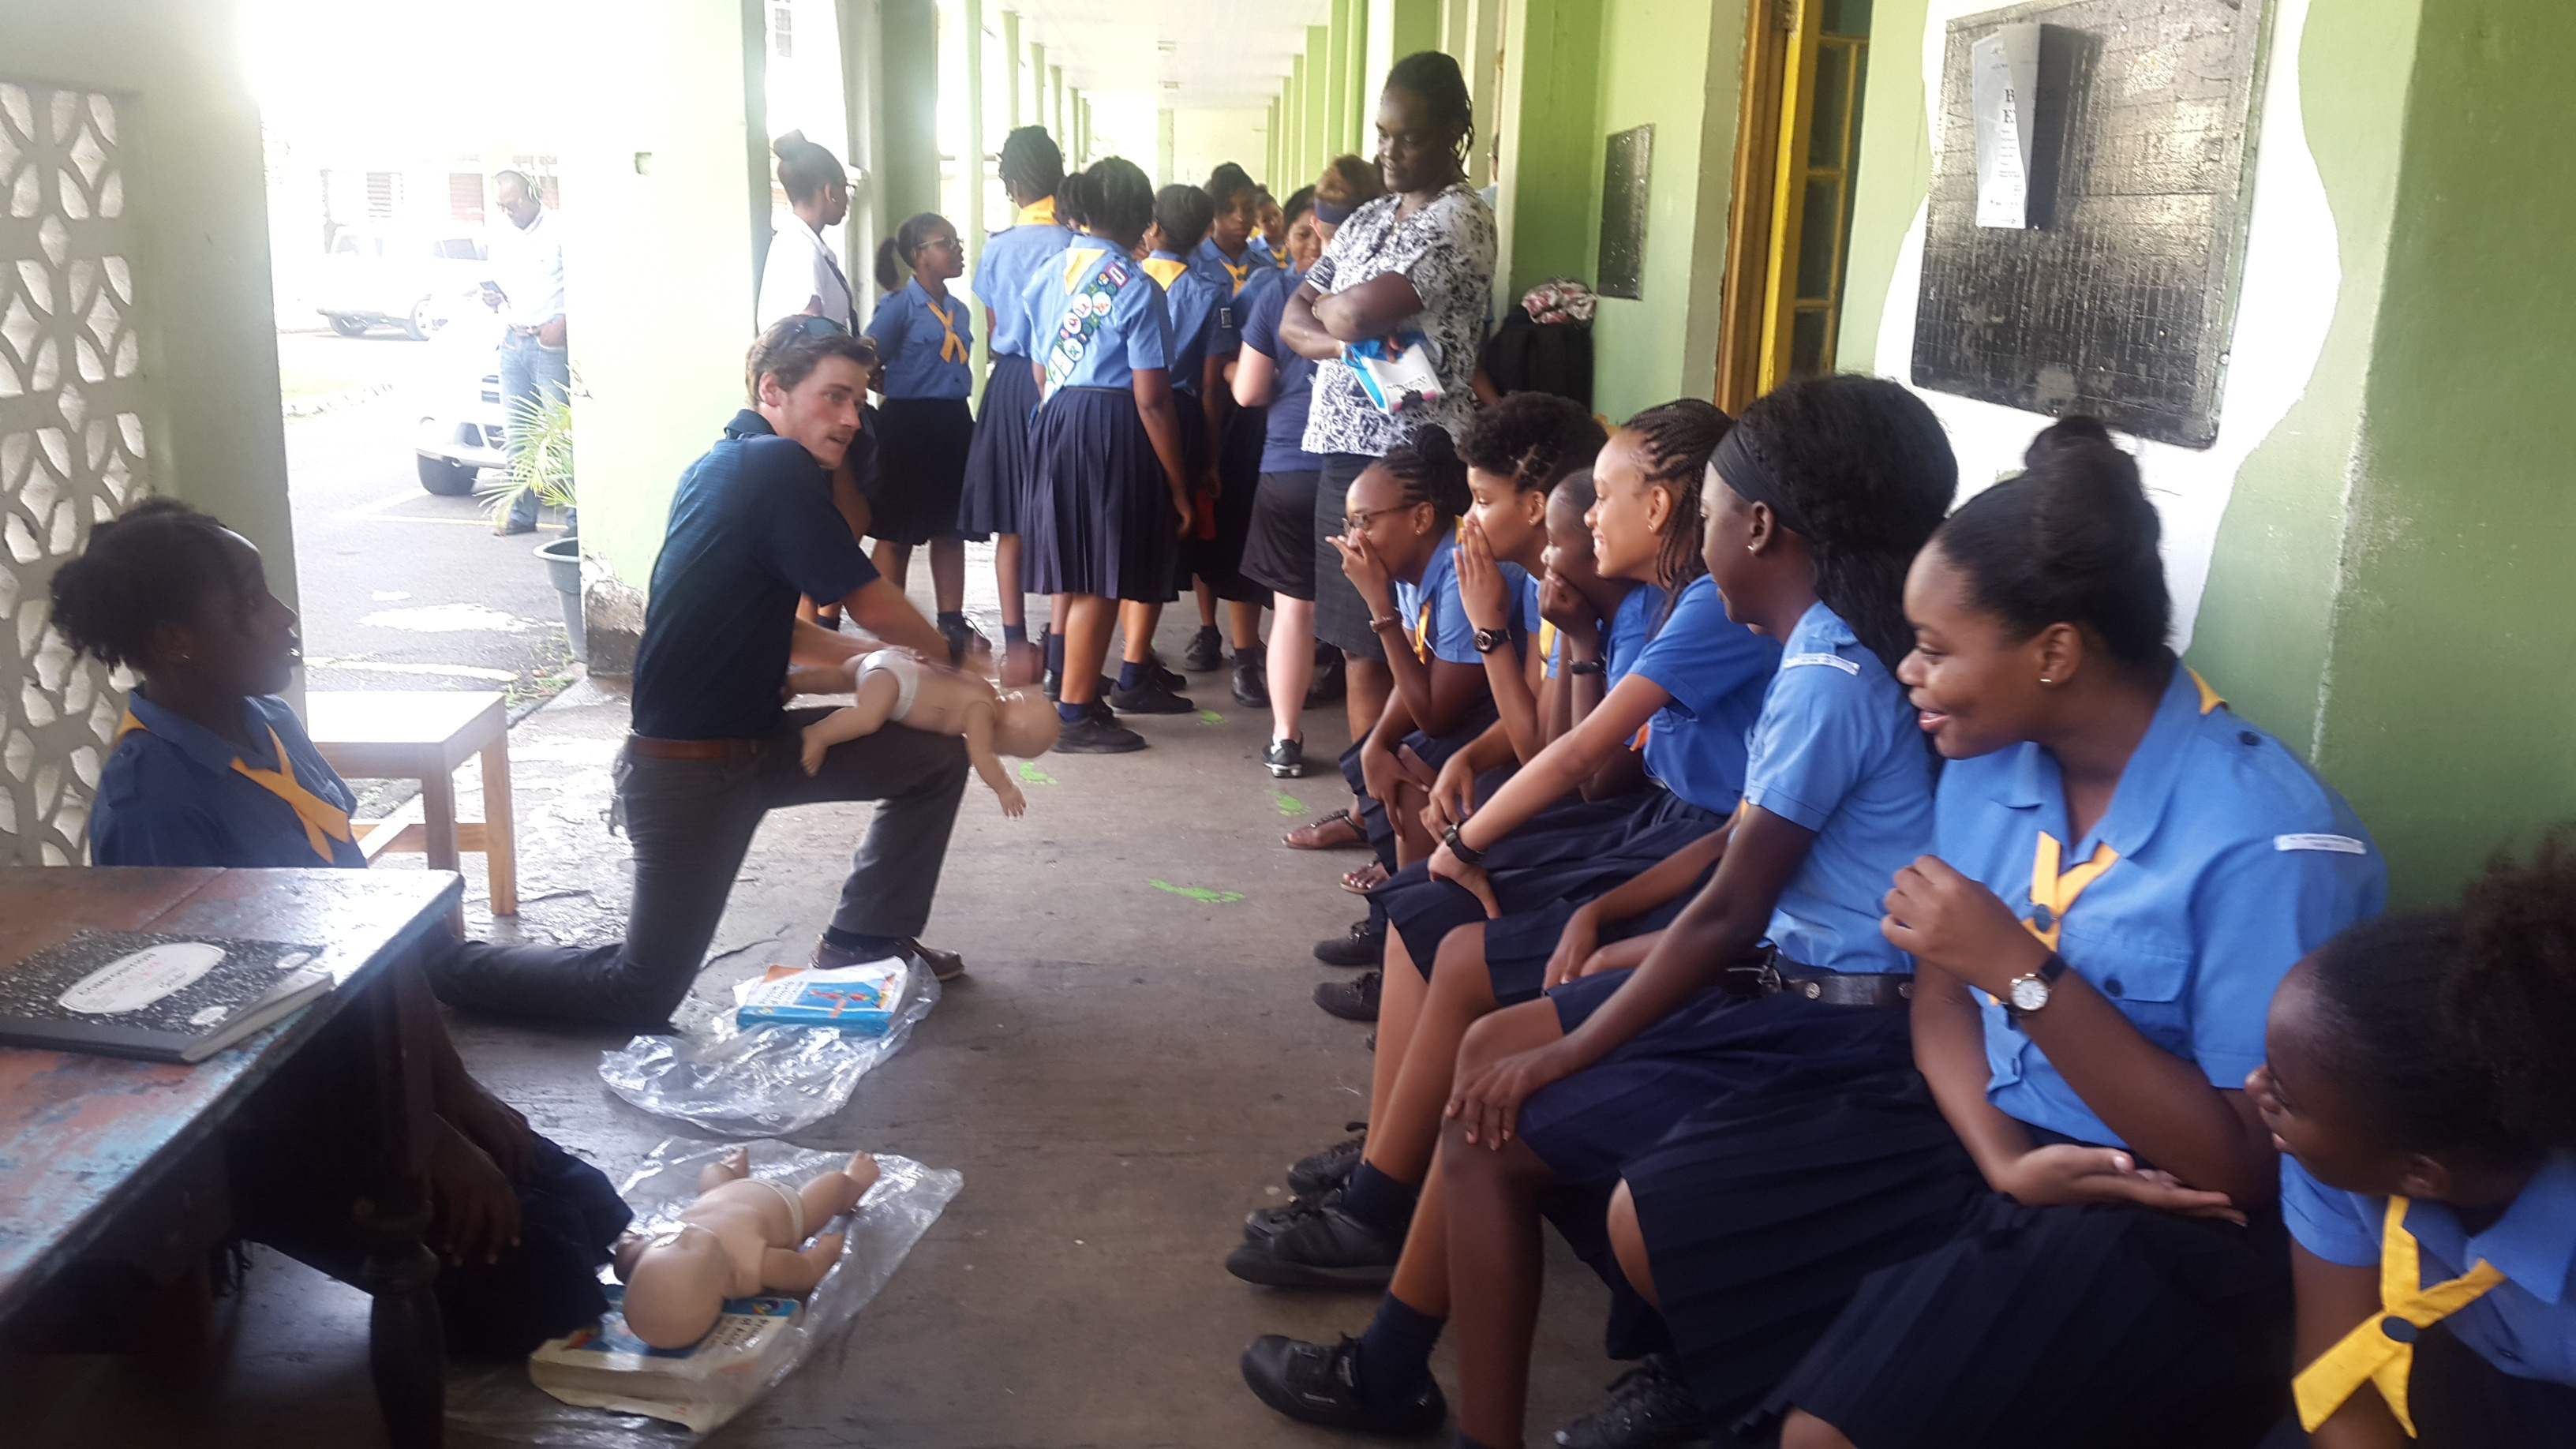 Trinity School of Medicine's Society of Medicine and Surgery Conducts First Aid Training